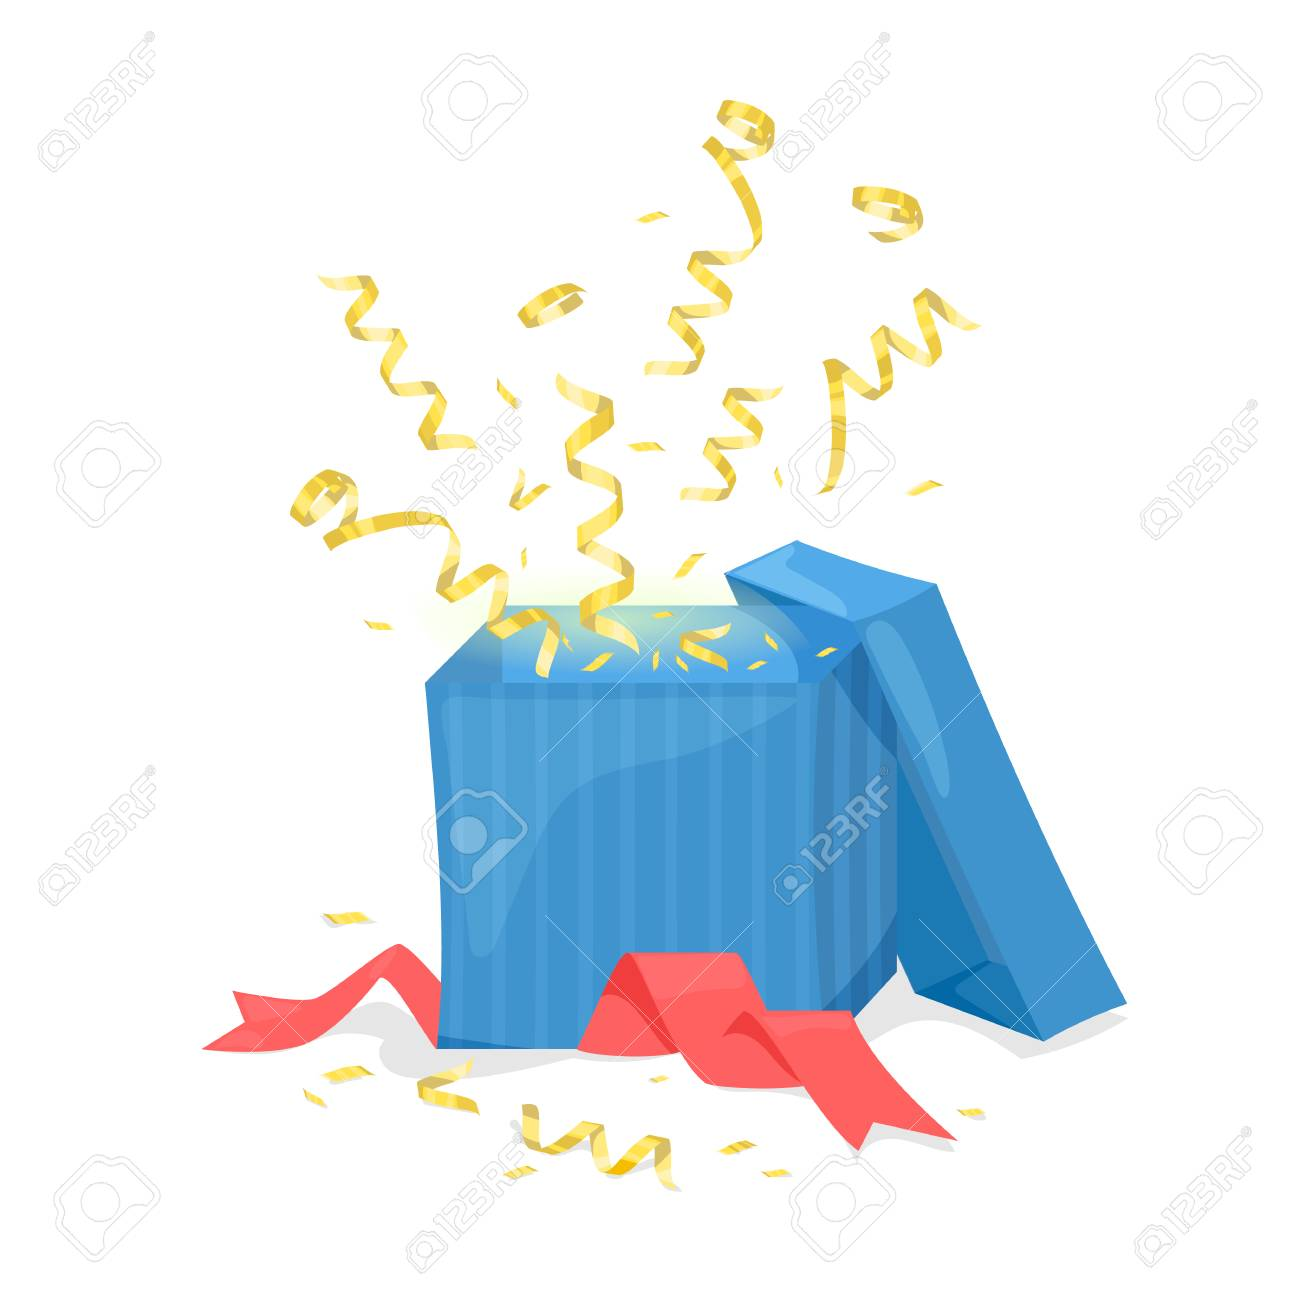 Open gift box explode gold ribbon and confetti. Vector illustration Stock Vector - 87269151  sc 1 st  123RF.com : exploding gift box confetti - princetonregatta.org